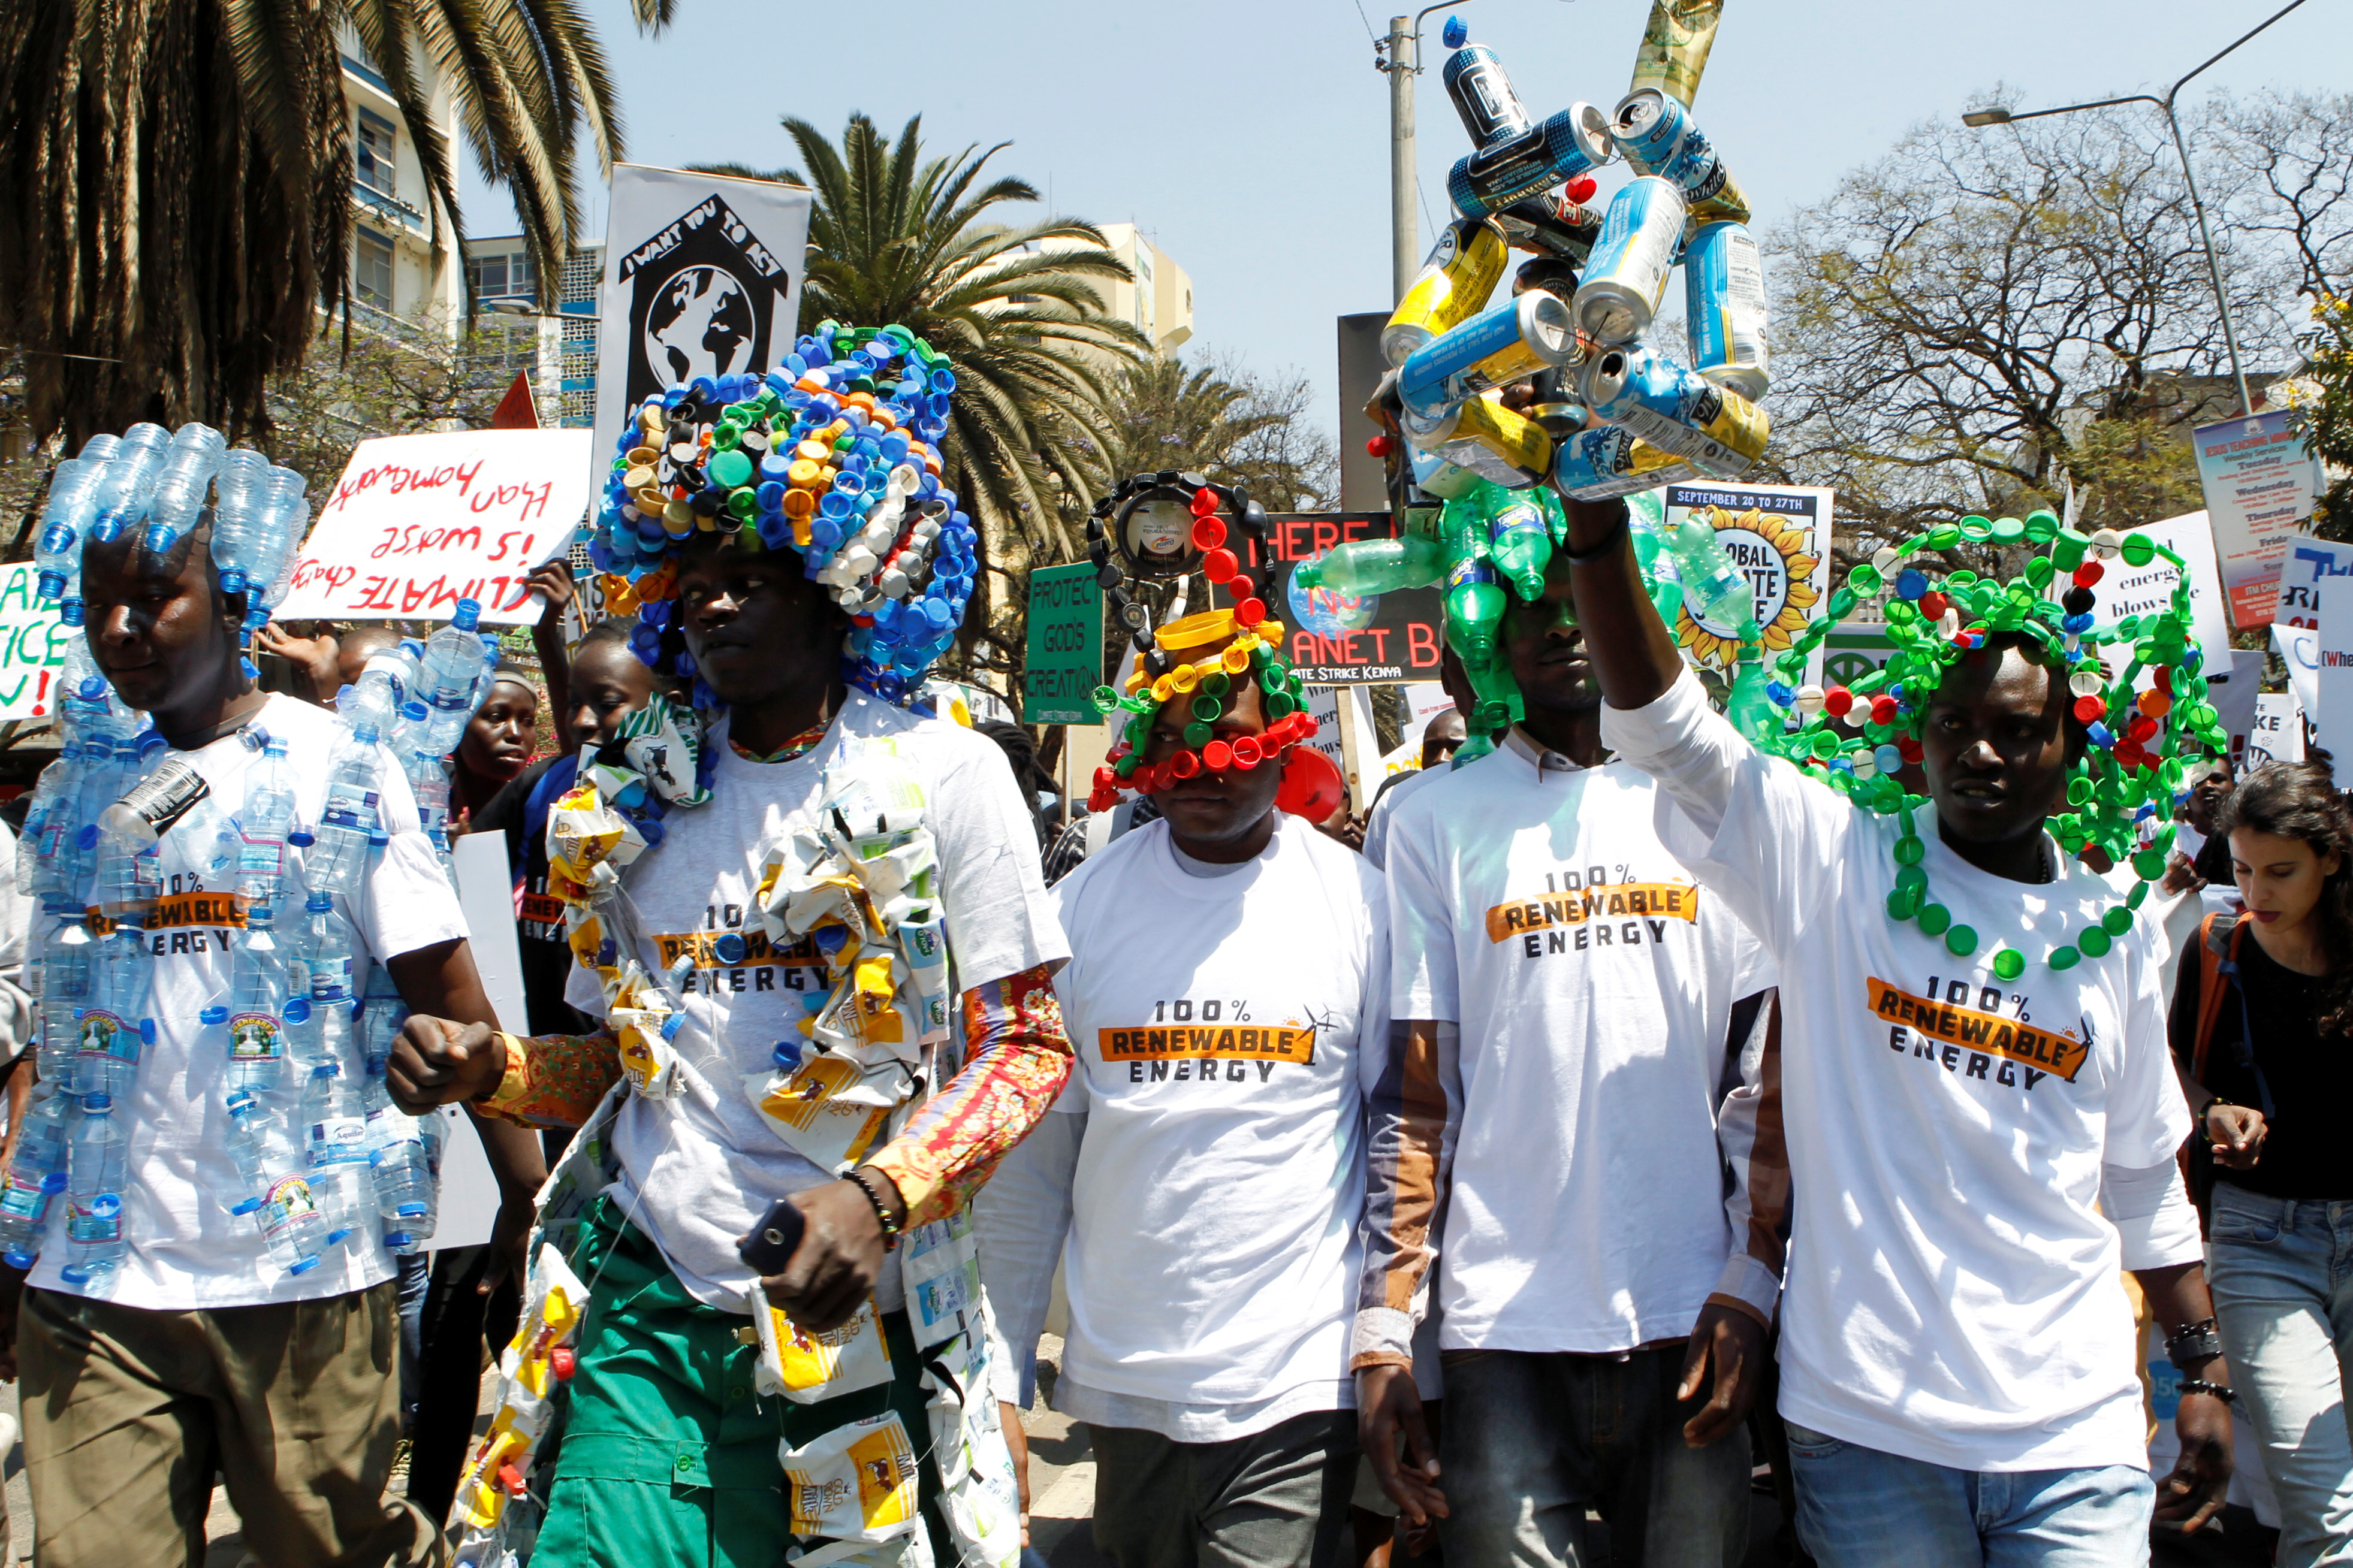 Environmental activists march as they take part in the Climate strike protest calling for action on climate change, in Nairobi, Kenya, September 20, 2019